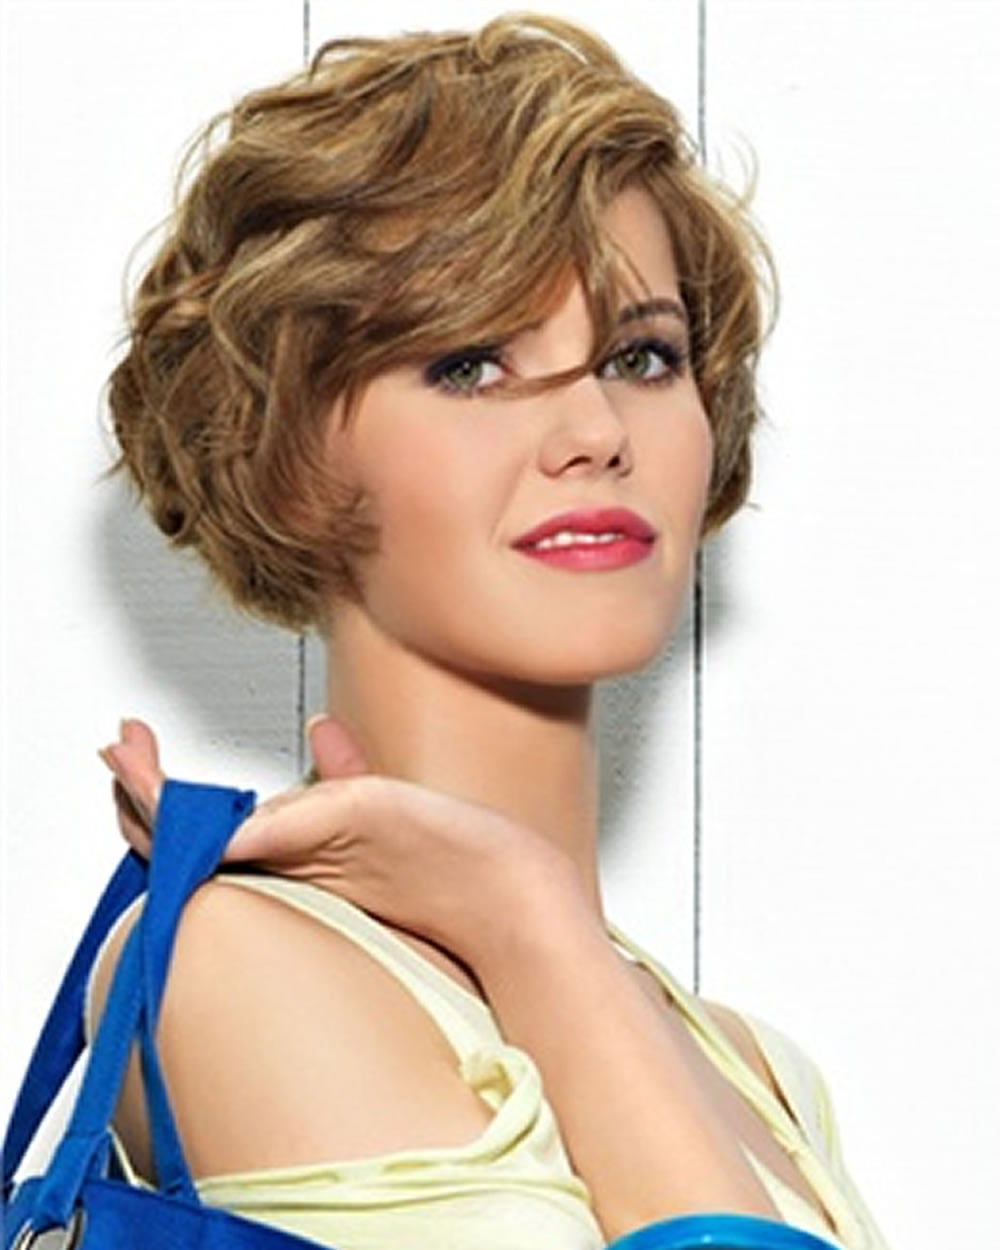 Hair models 2018 newest short haircut designs for 2018 short hair models 2018 newest short haircut designs for 2018 urmus Choice Image